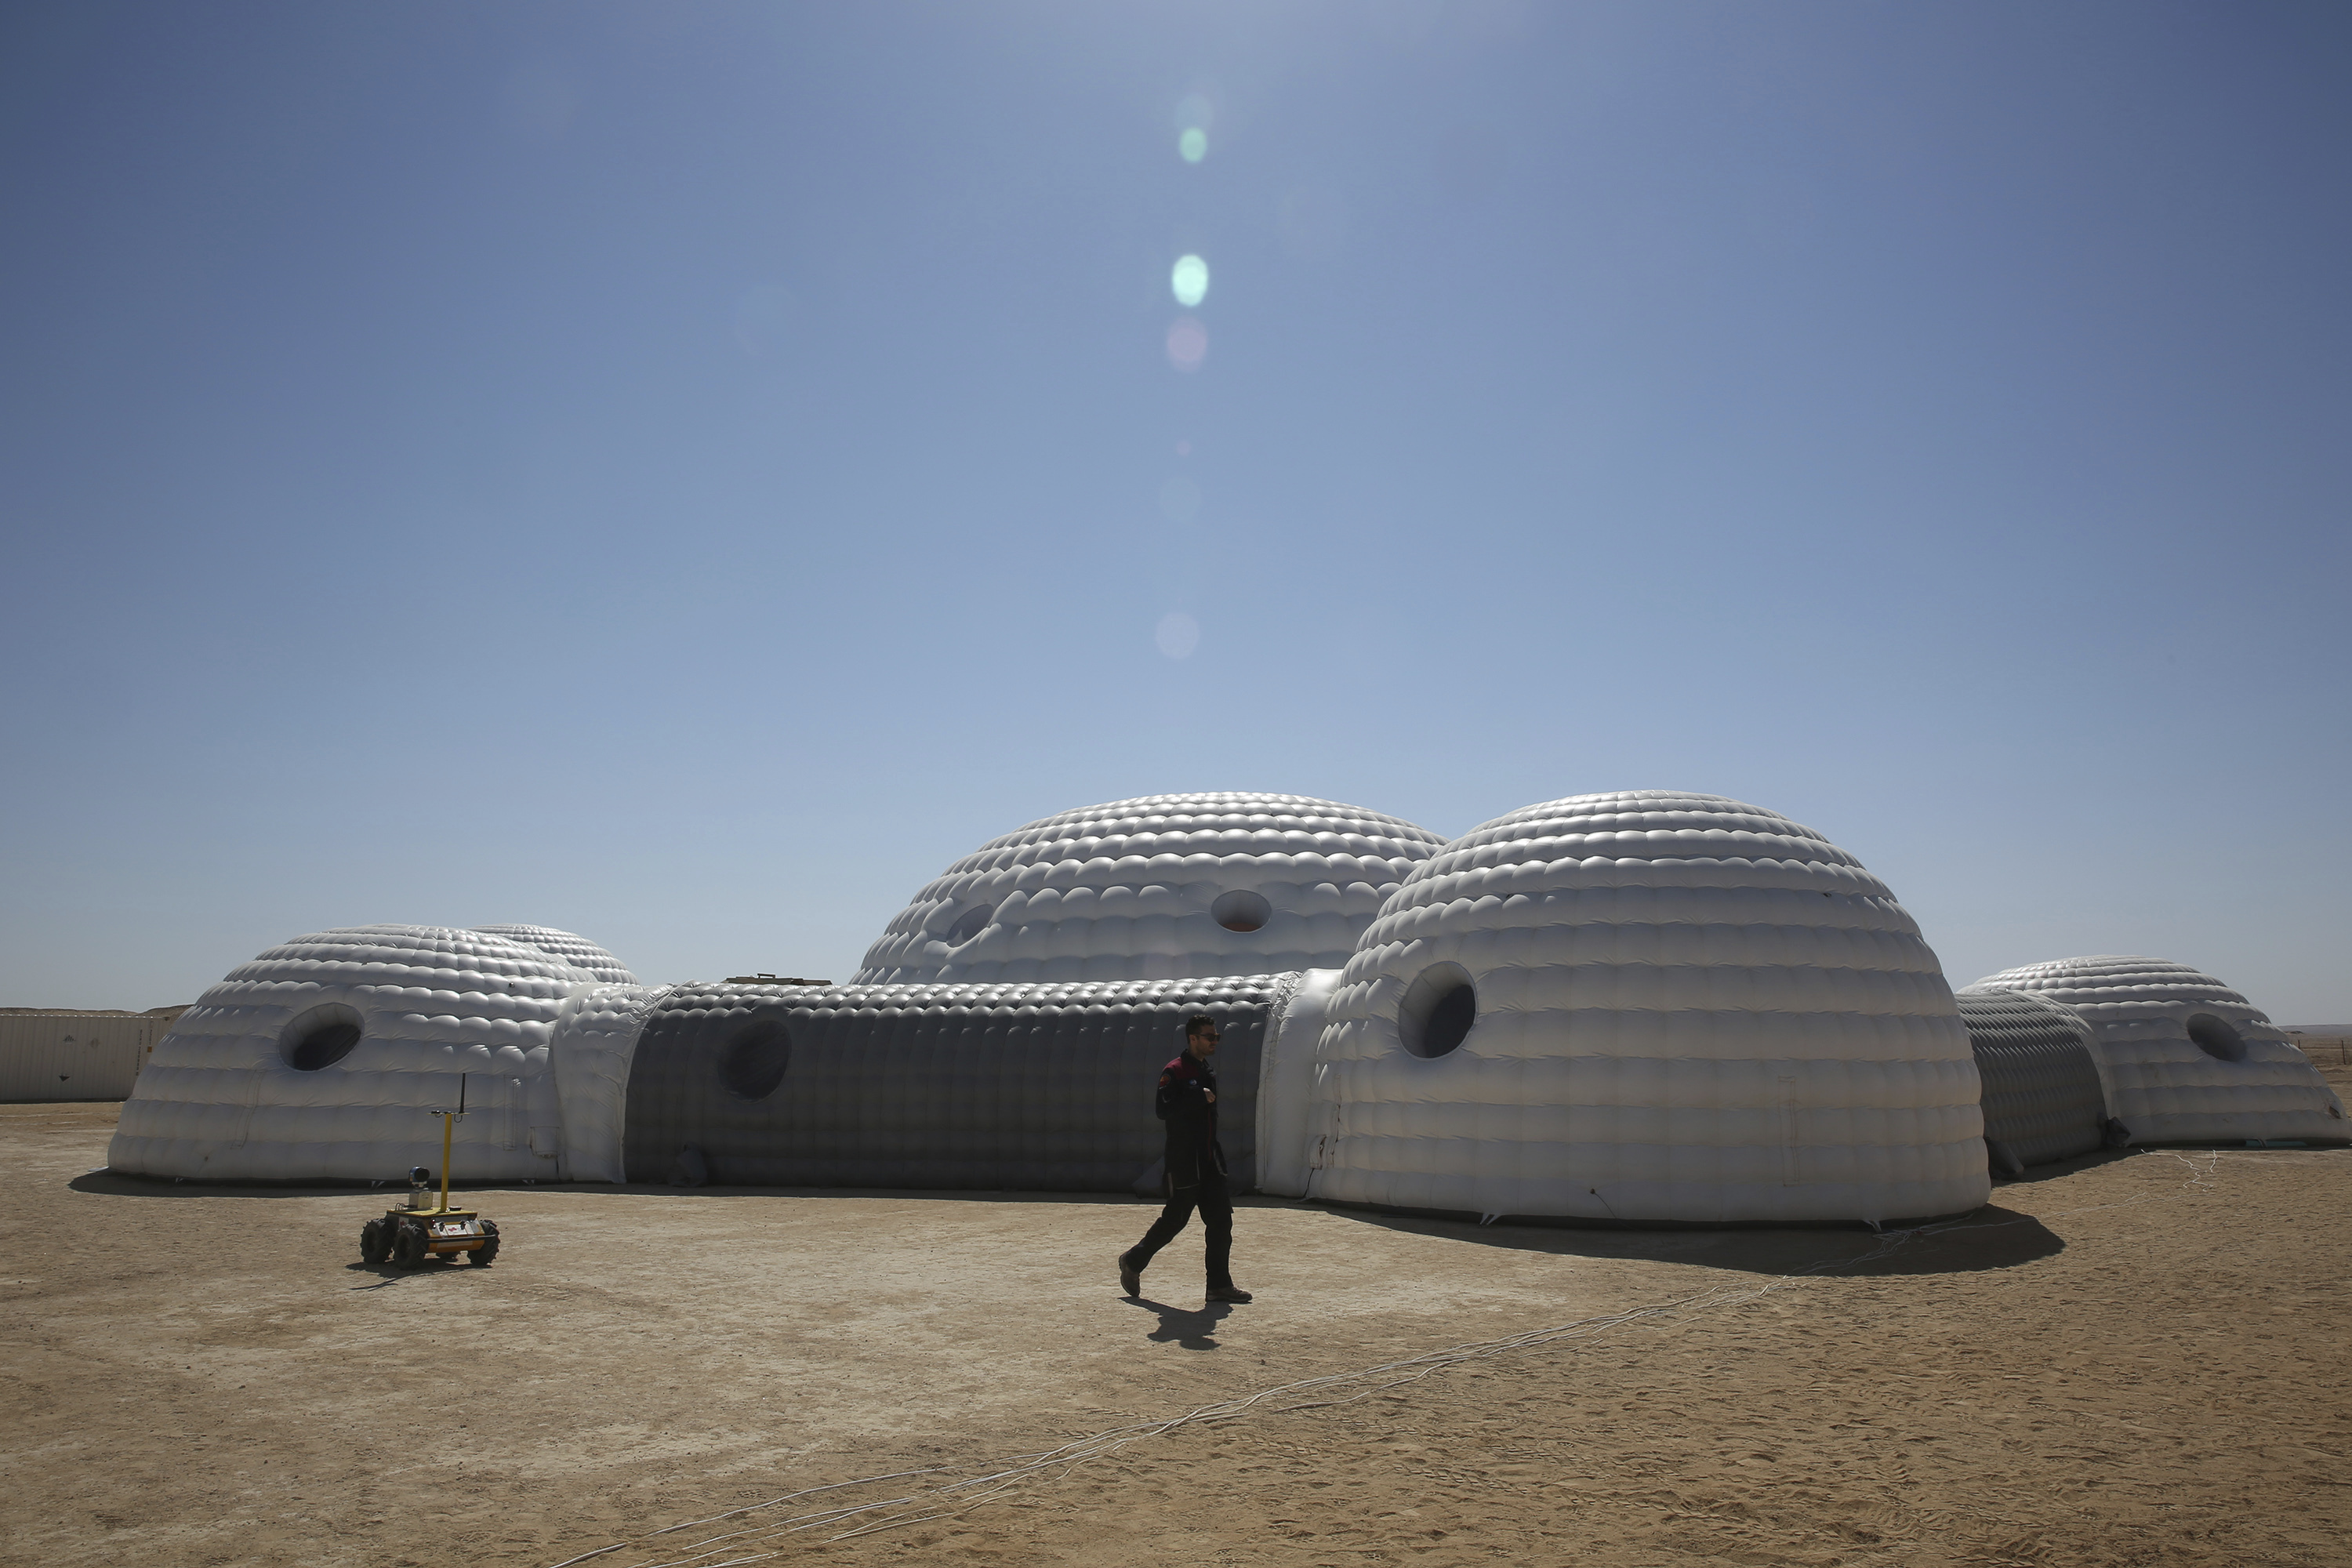 A 2.4-ton inflated habitat used by the AMADEE-18 Mars simulation in the Dhofar desert of southern Oman (Sam McNeil/AP)